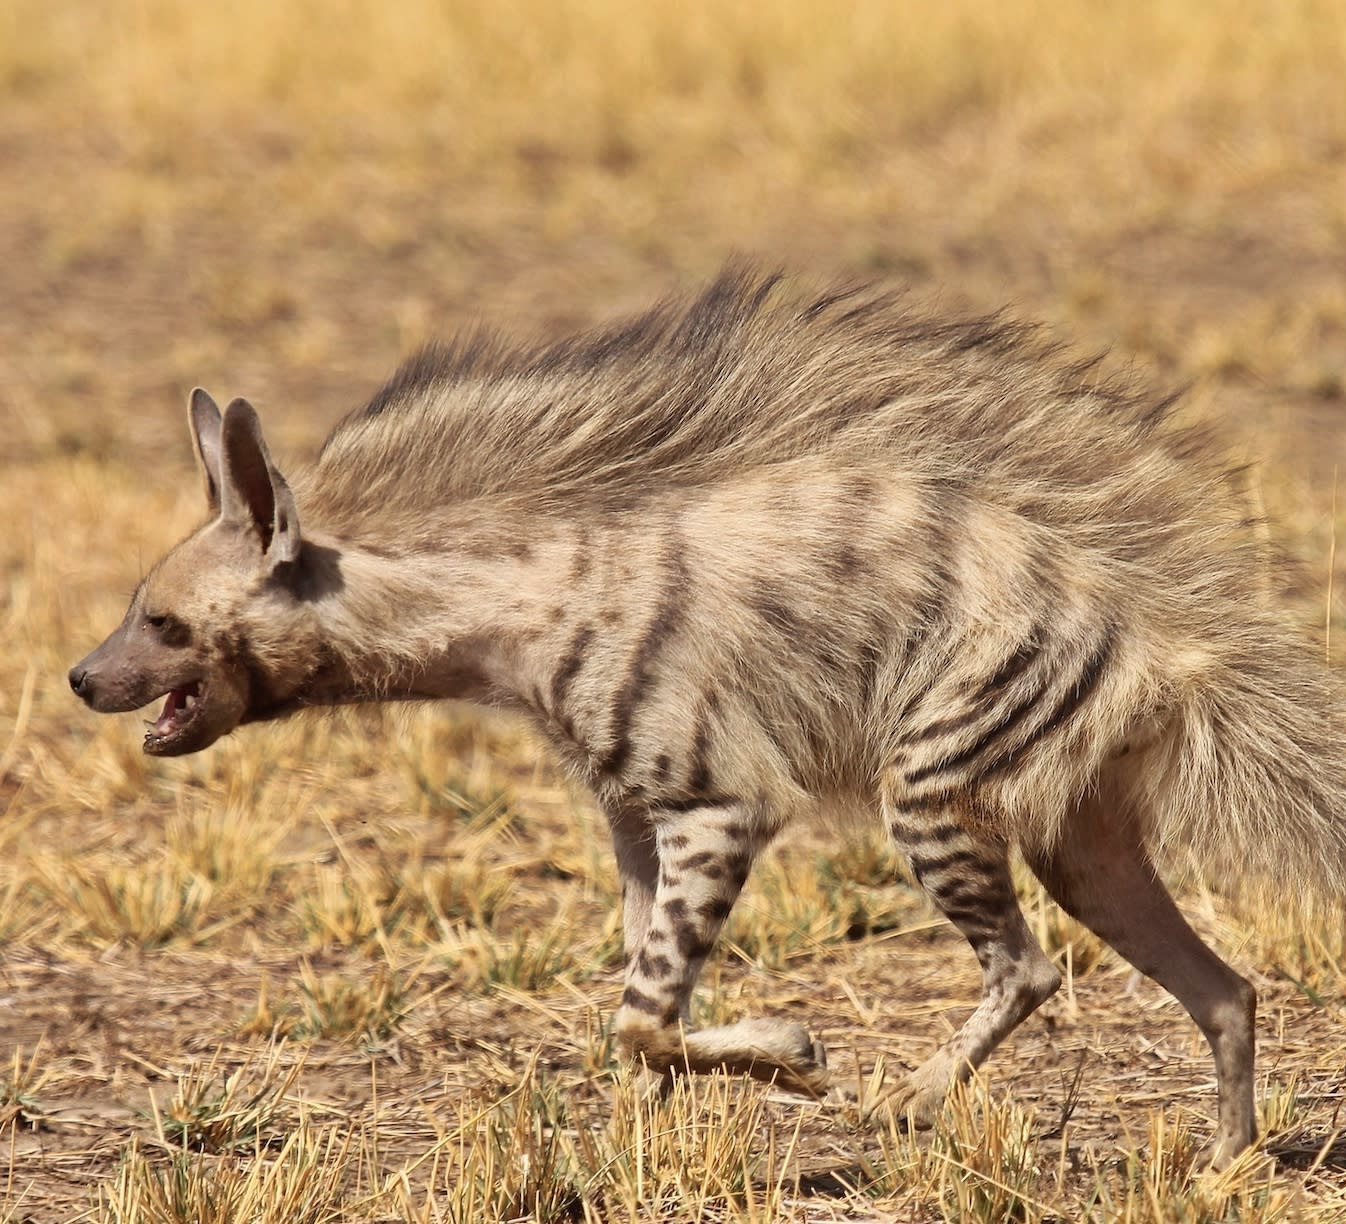 Not the Witch's Steed: Why the Hyena is India's Most Misunderstood Predator